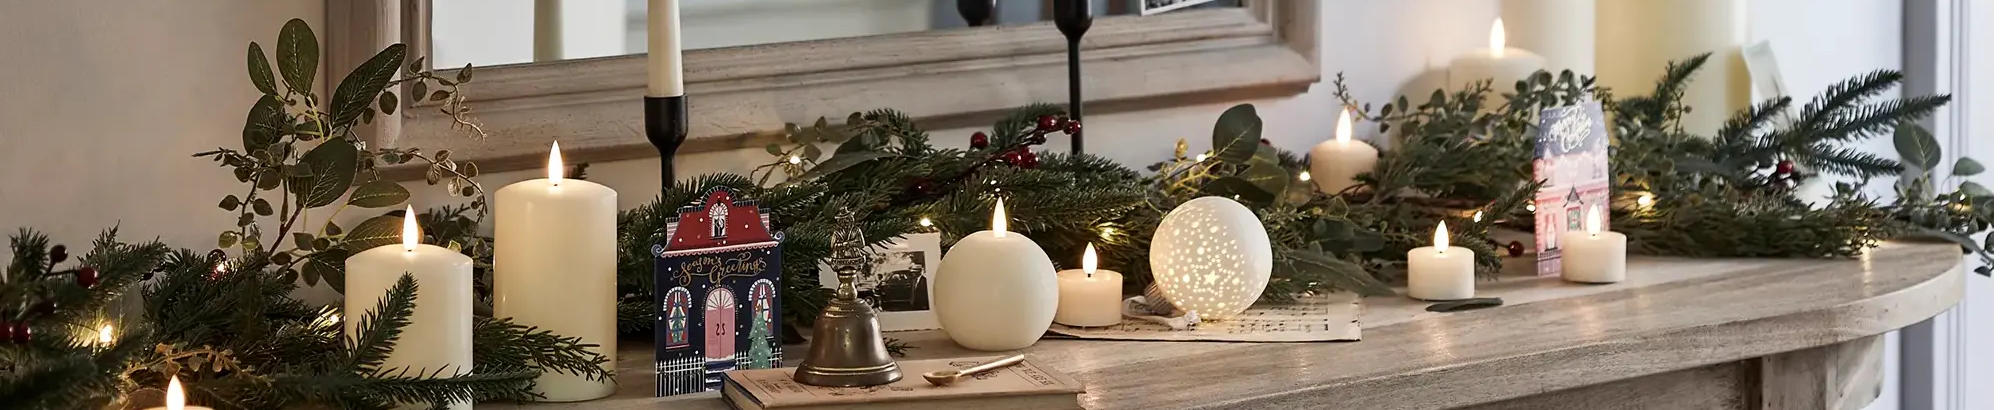 Side table in hallway decorated with assortment of candles and festive garland